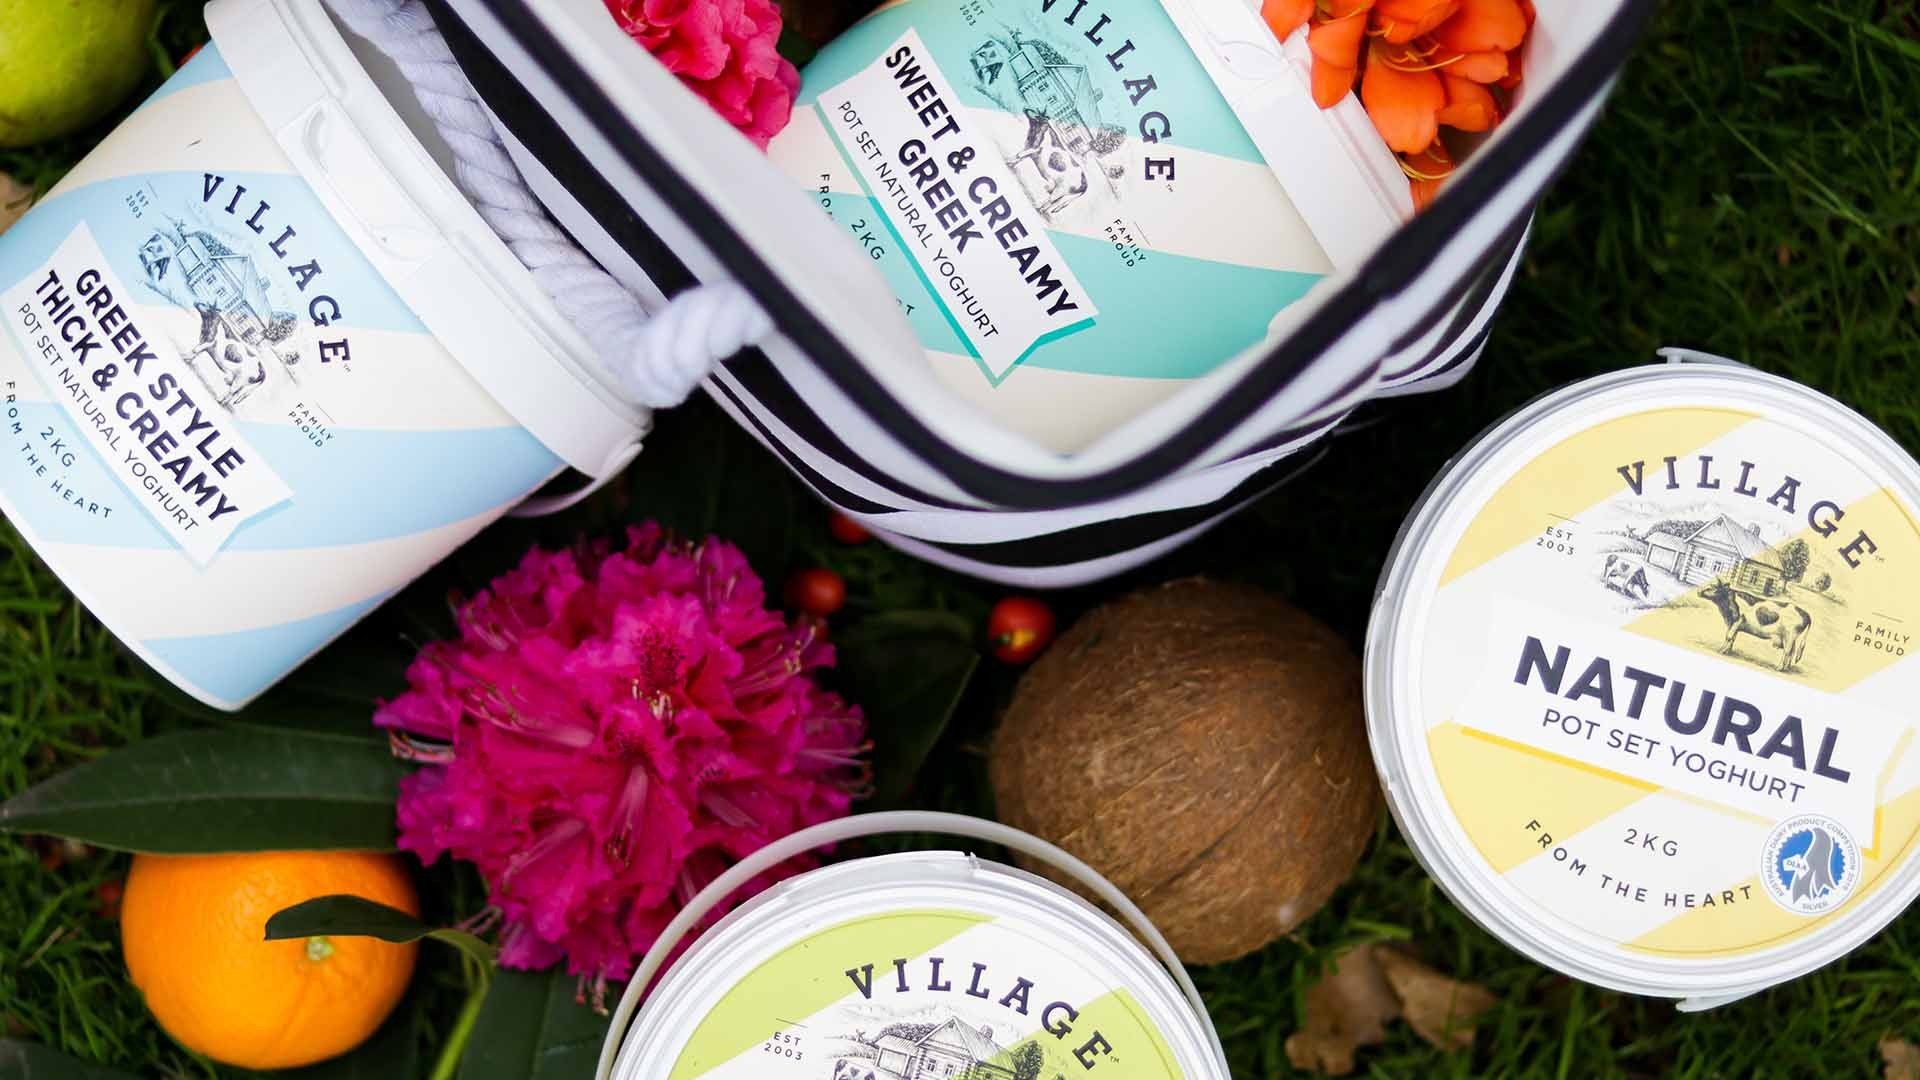 Village Dairy yoghurt product photography by Melbourne digital marketing agency Haines Media